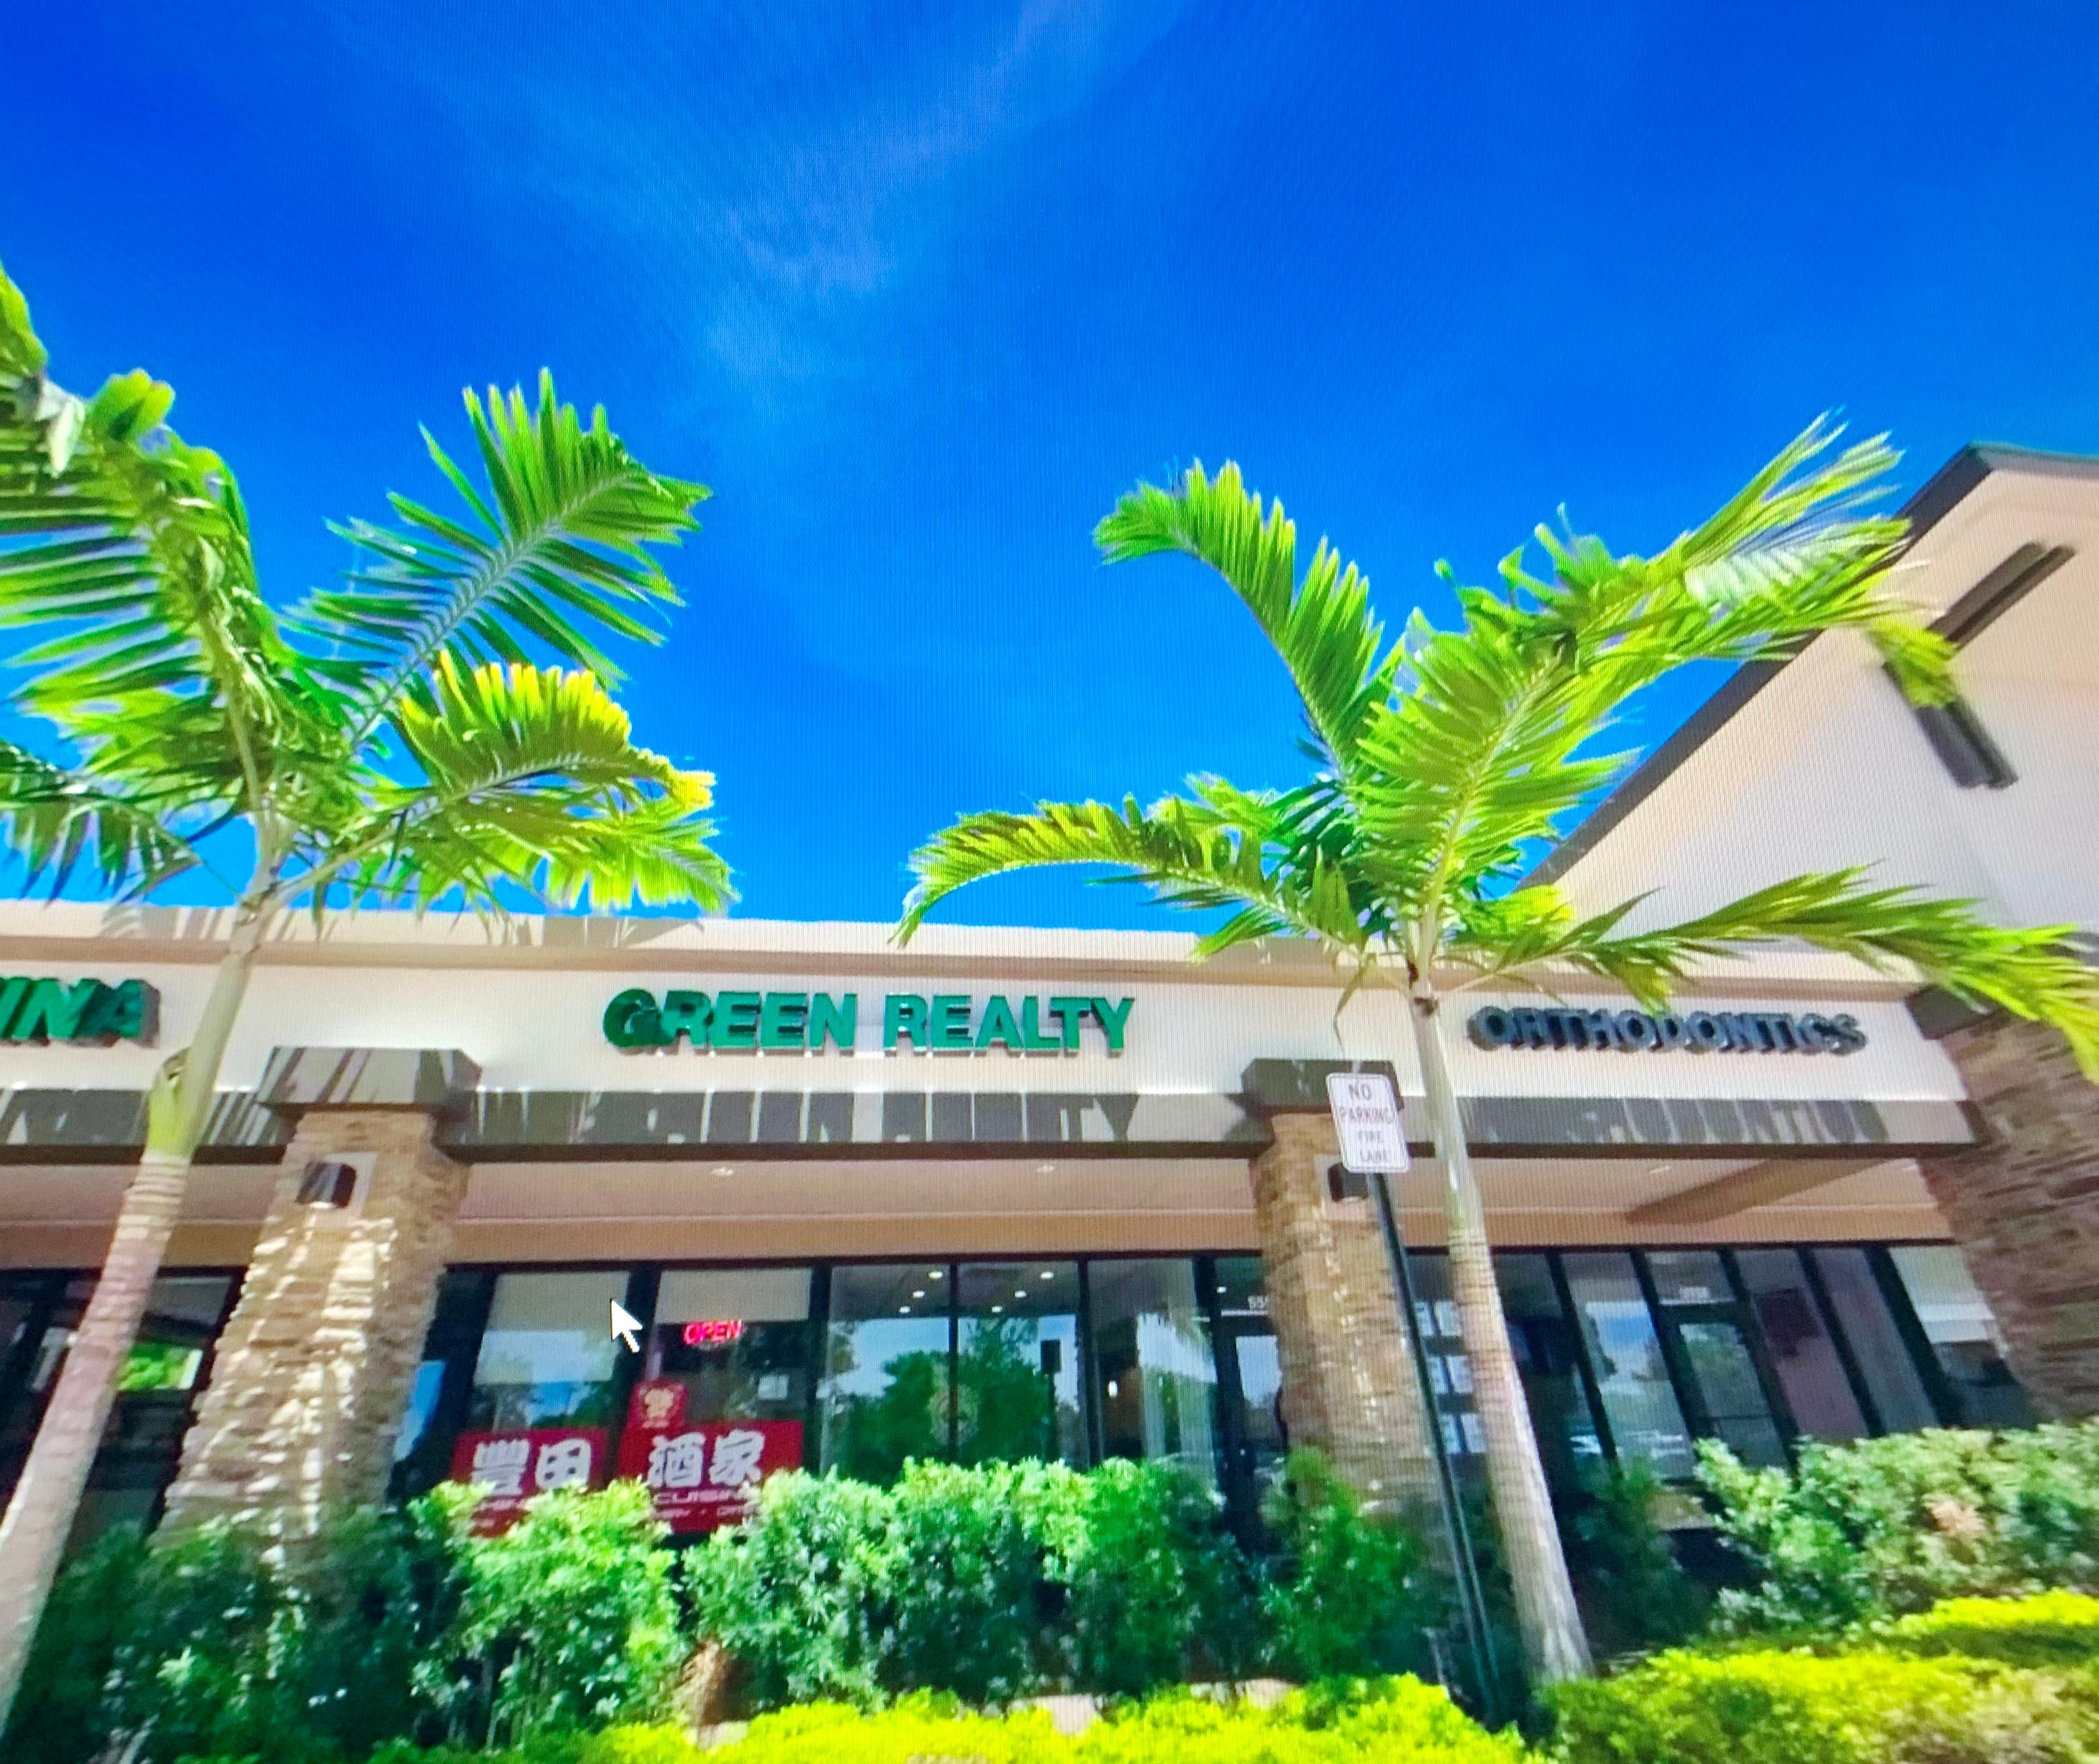 Green Realty Properties at the Countryside Shops in Cooper City Florida